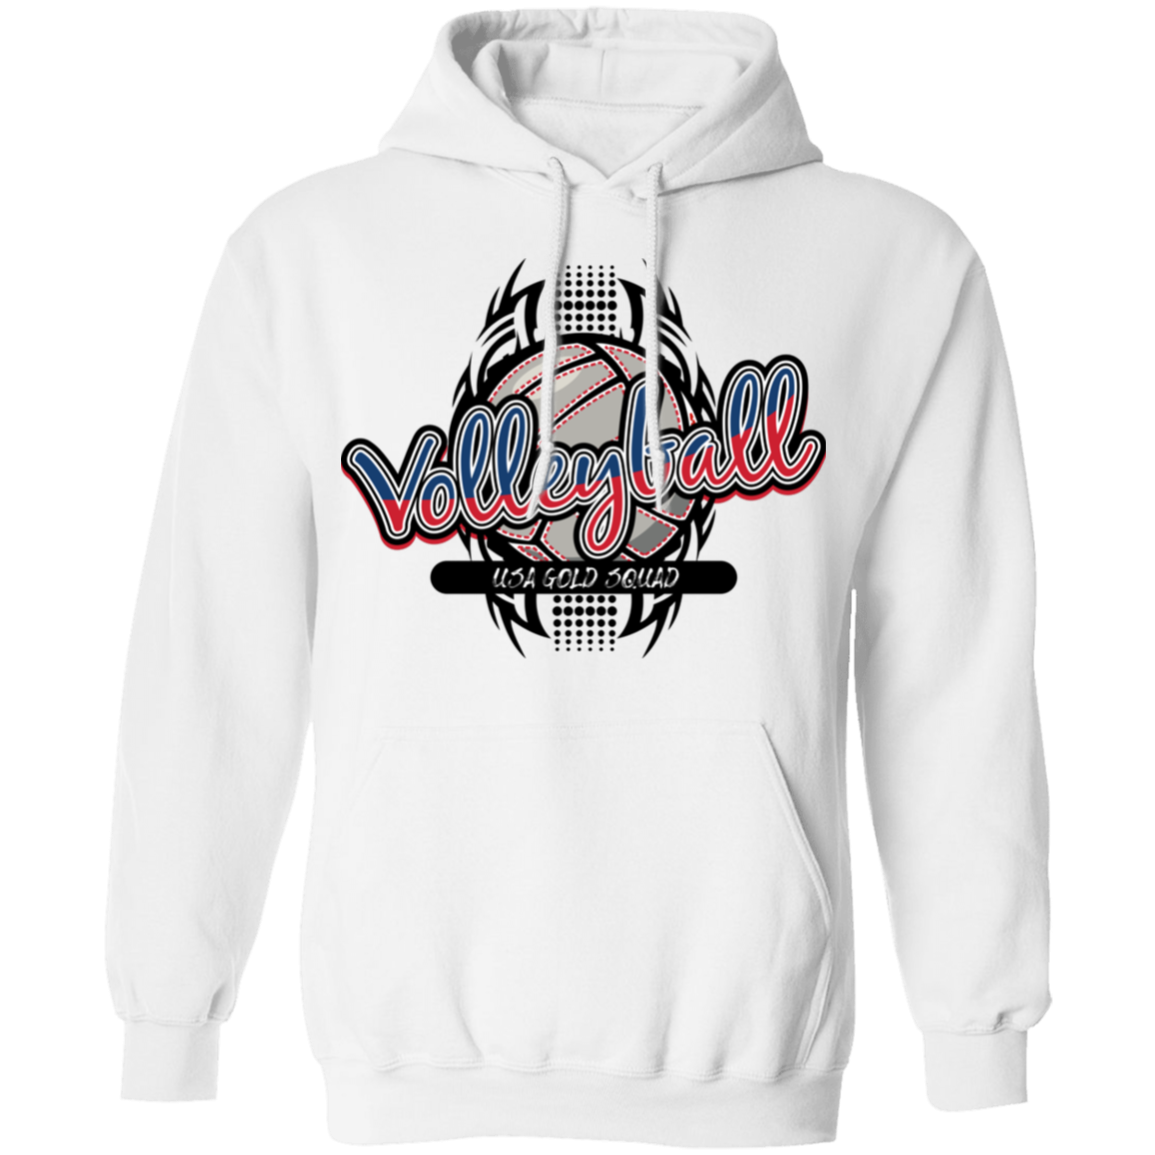 Ladies USA Gold Squad Volleyball Pullover Hoodie